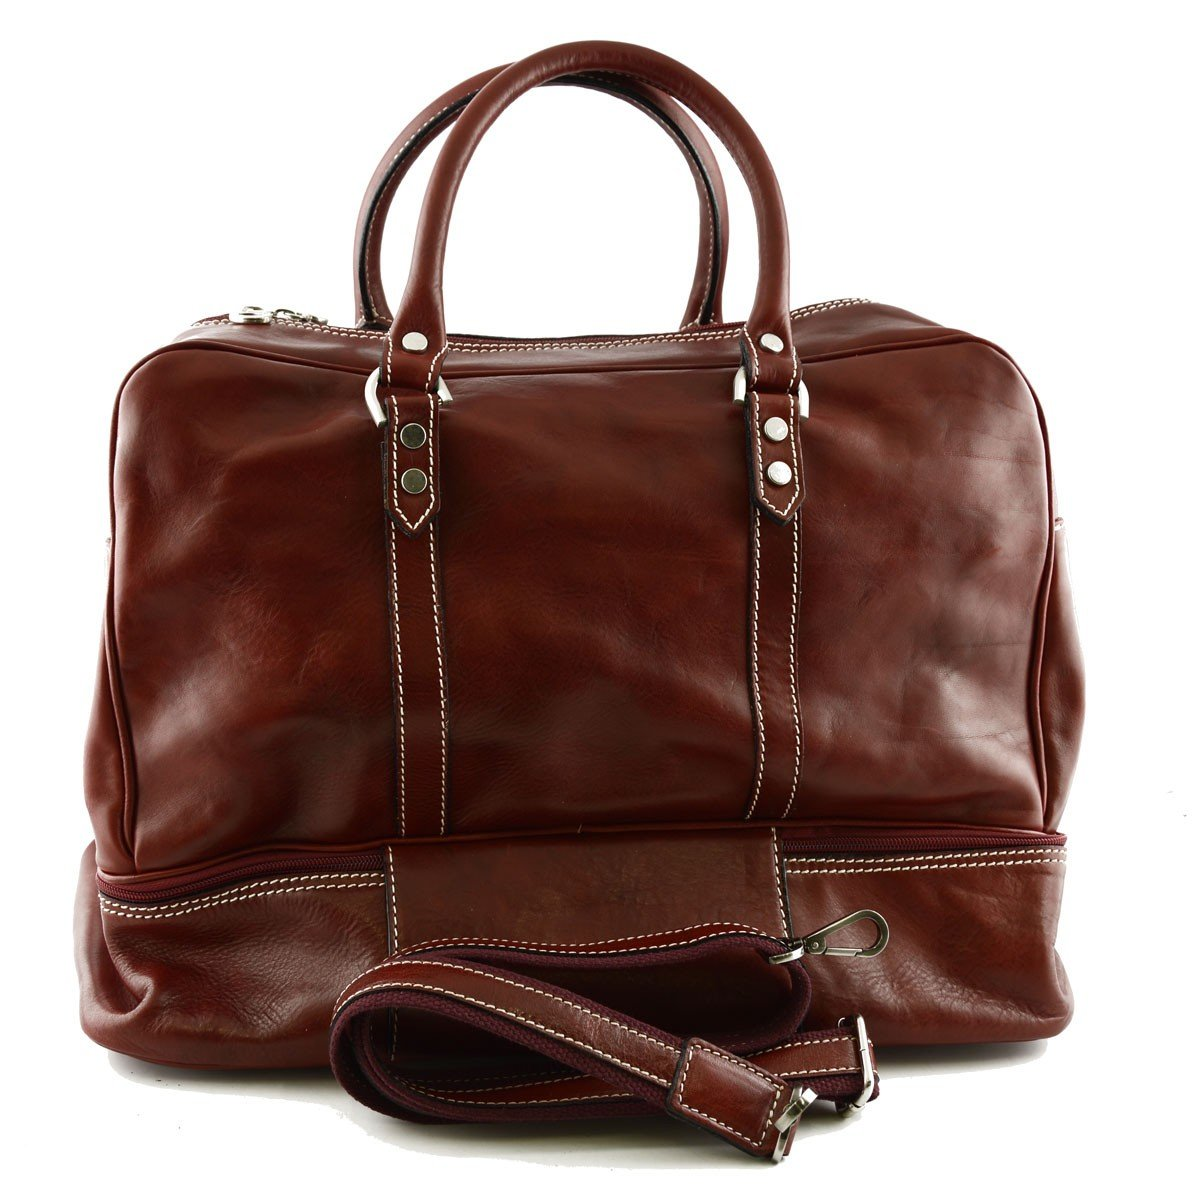 Made In Italy Leather Travel Bag Color Red - Travel Bag B01MXWDC4W